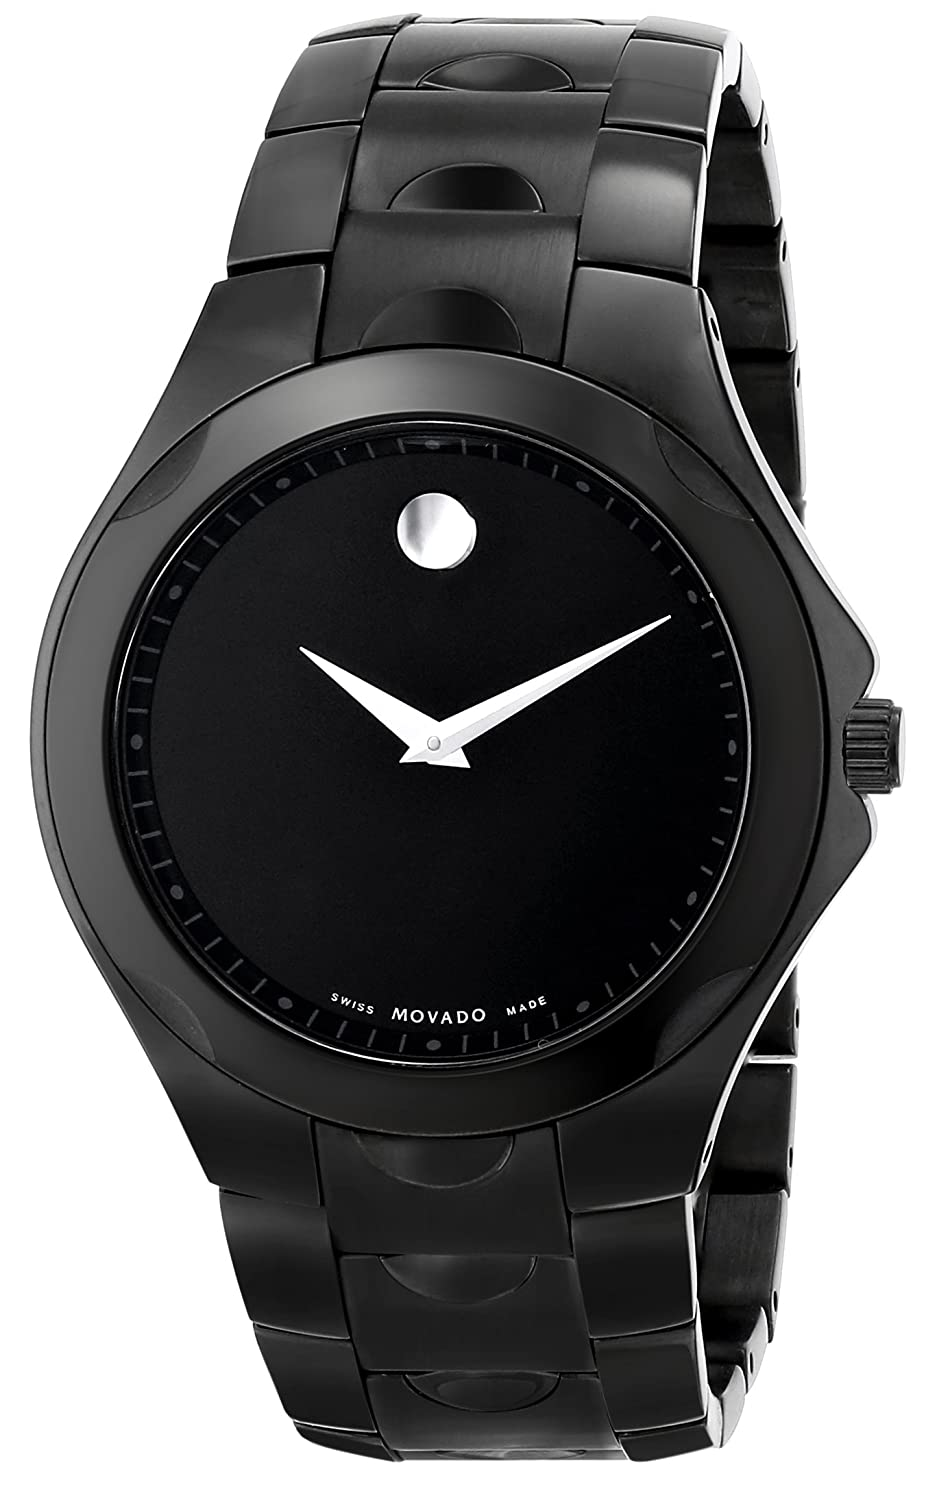 movado amazon dp men watches sport ca watch black pvd luno s